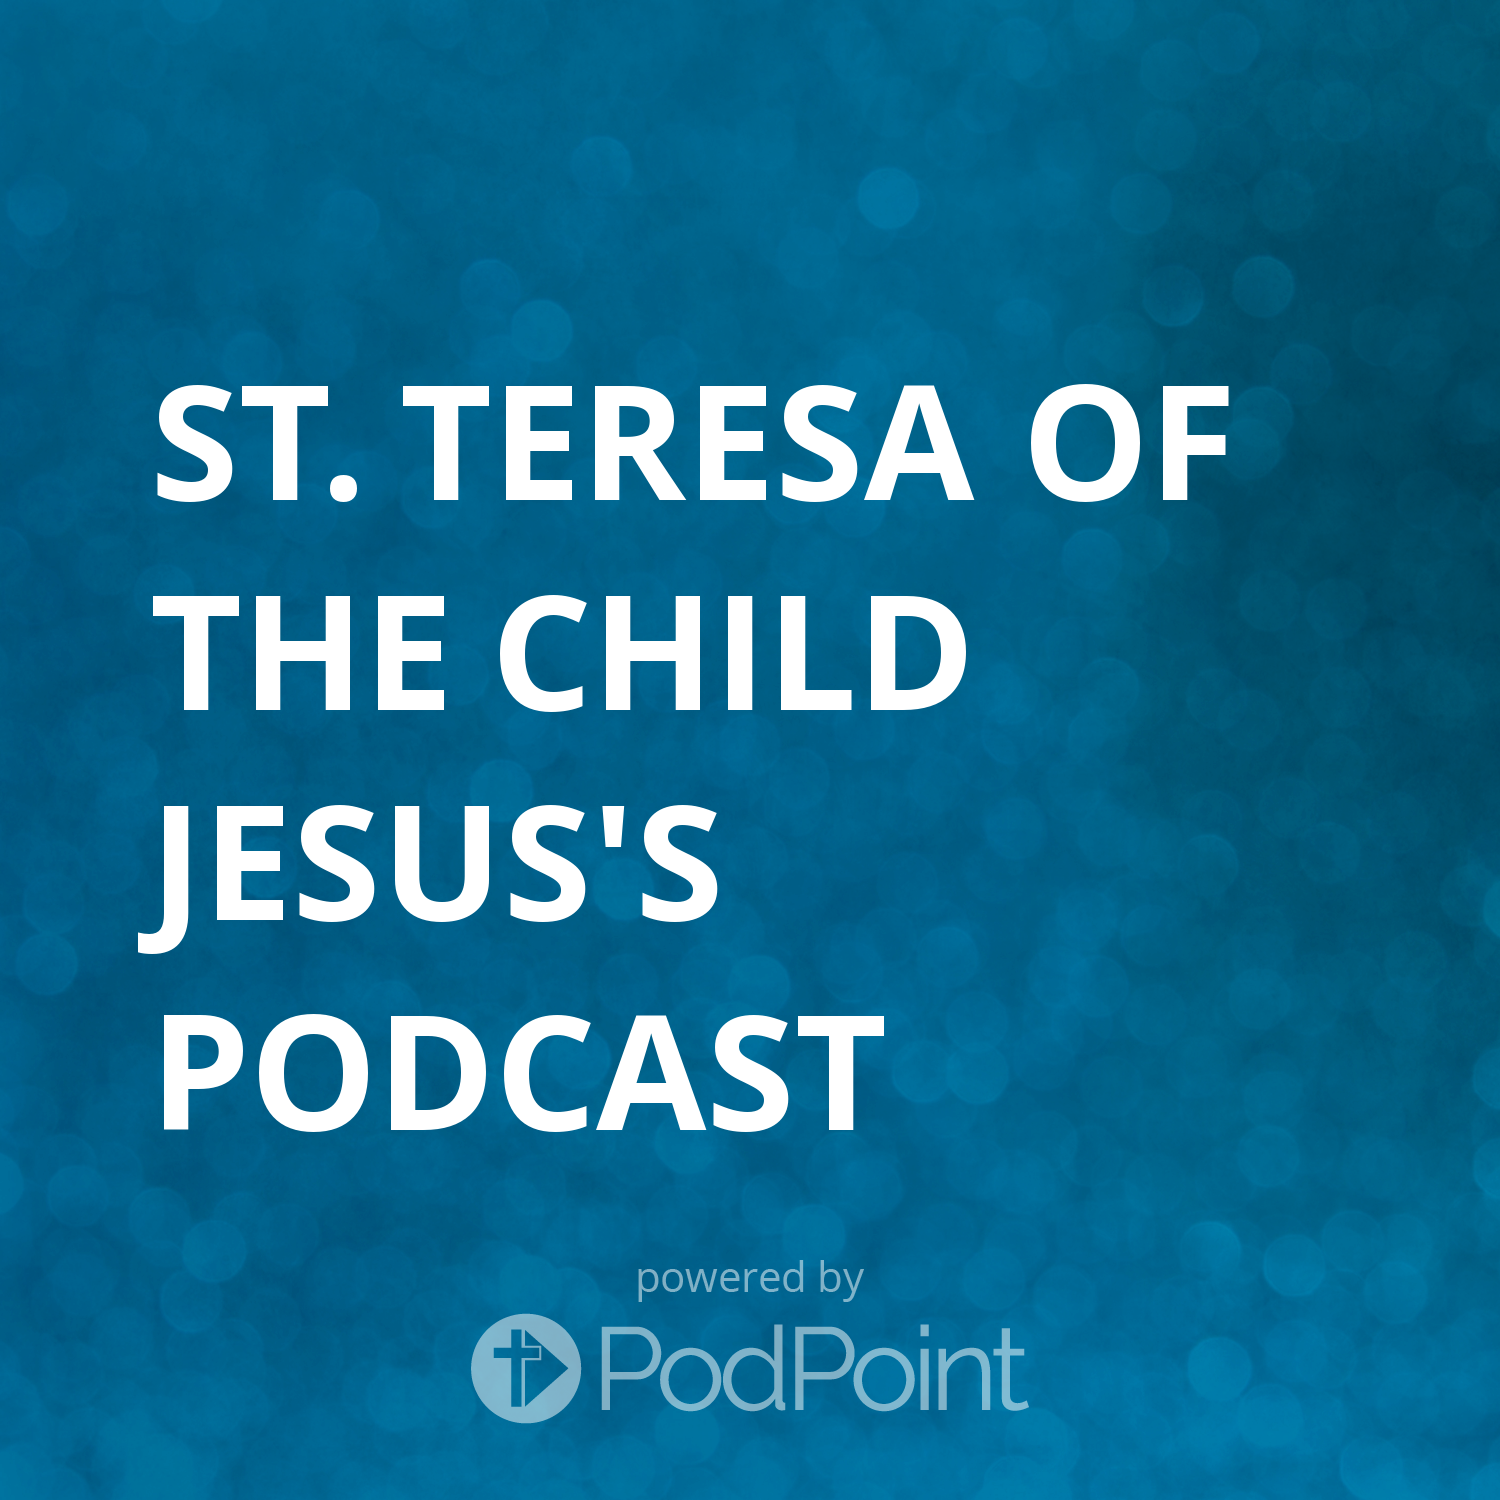 St. Teresa of the Child Jesus Podcast